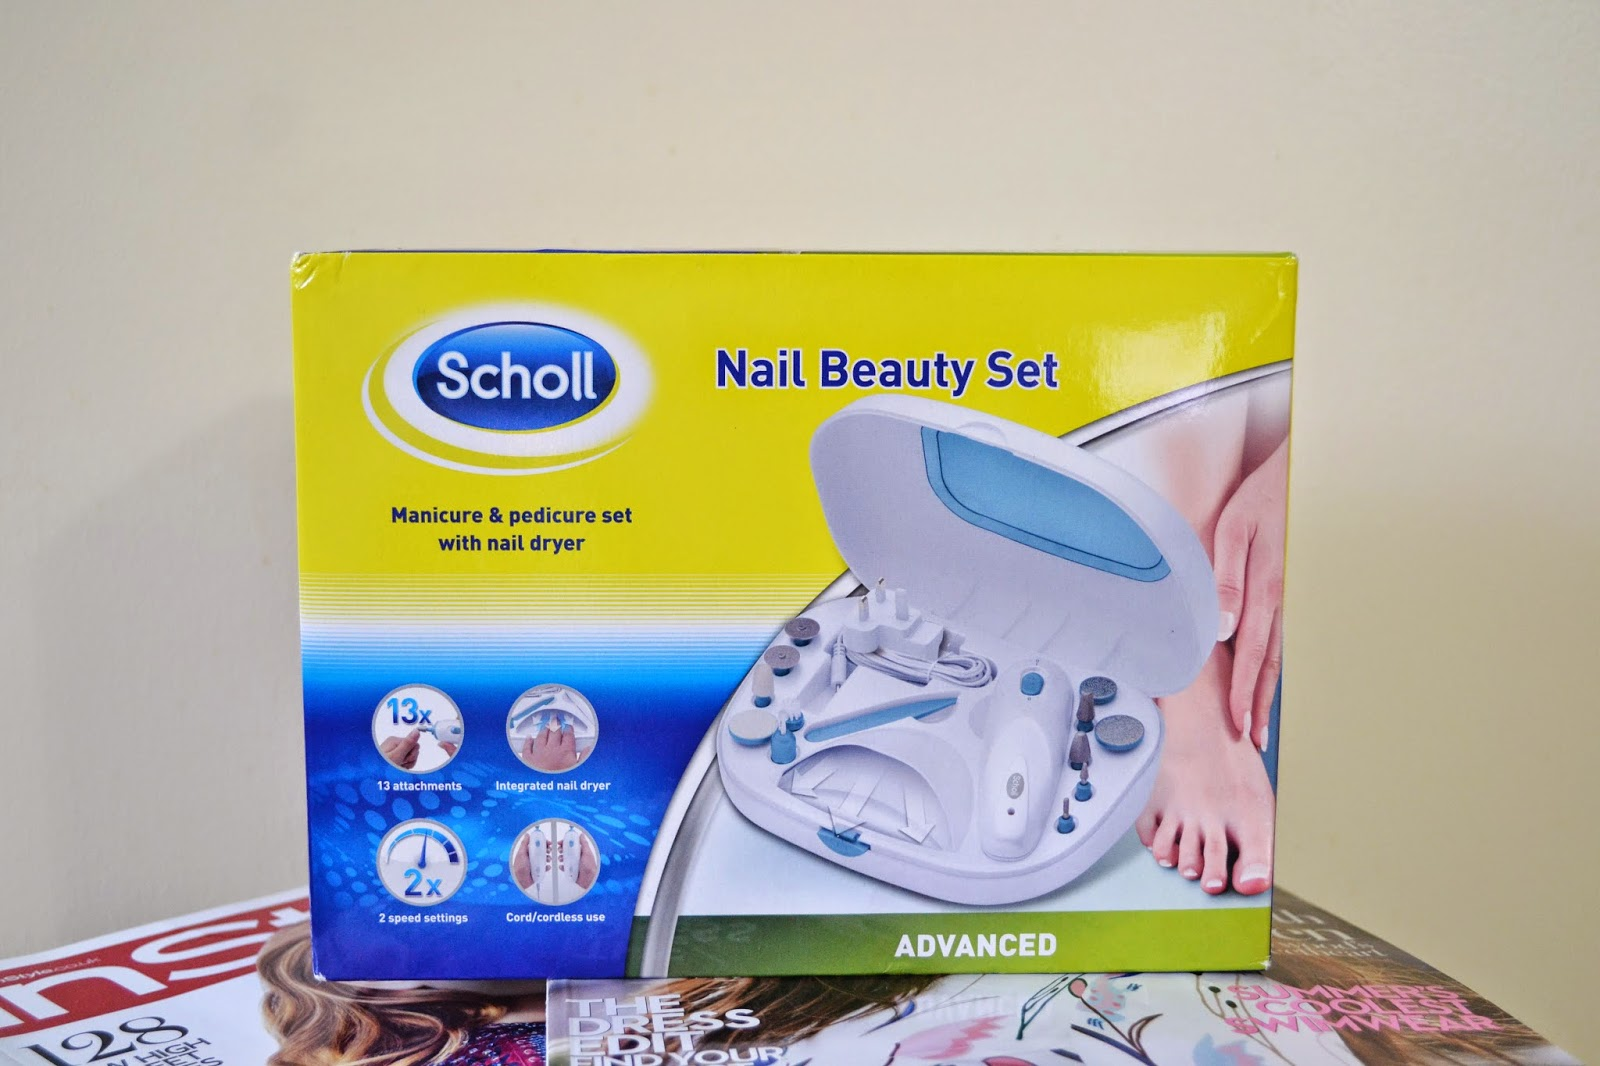 Scholl Manicure Pedicure Nail Beauty Set | Christmas Gift Guide #1 - Aspiring Londoner